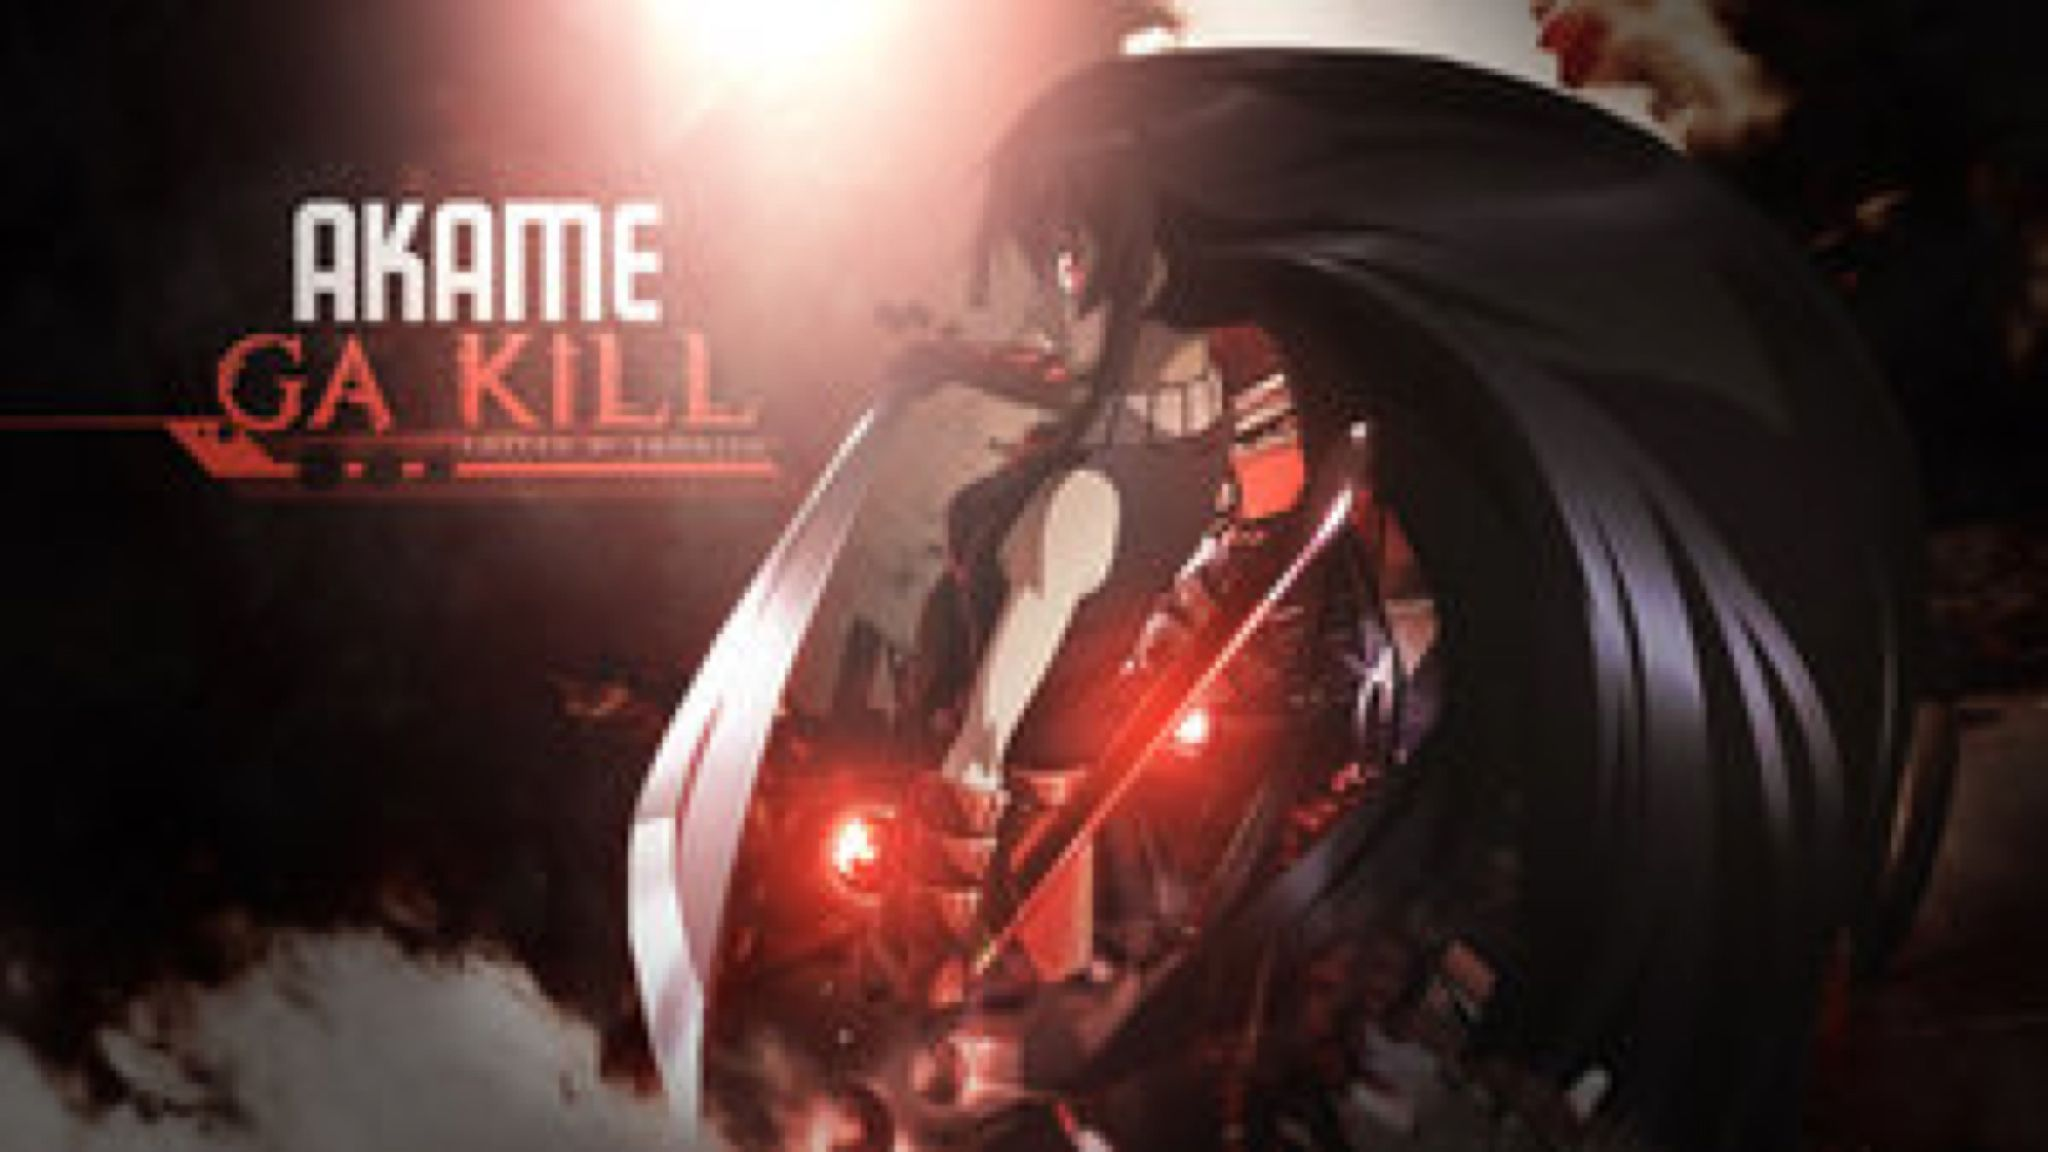 Akame Ga Kill Wallpaper By Redeye27 On Deviantart Akame Ga